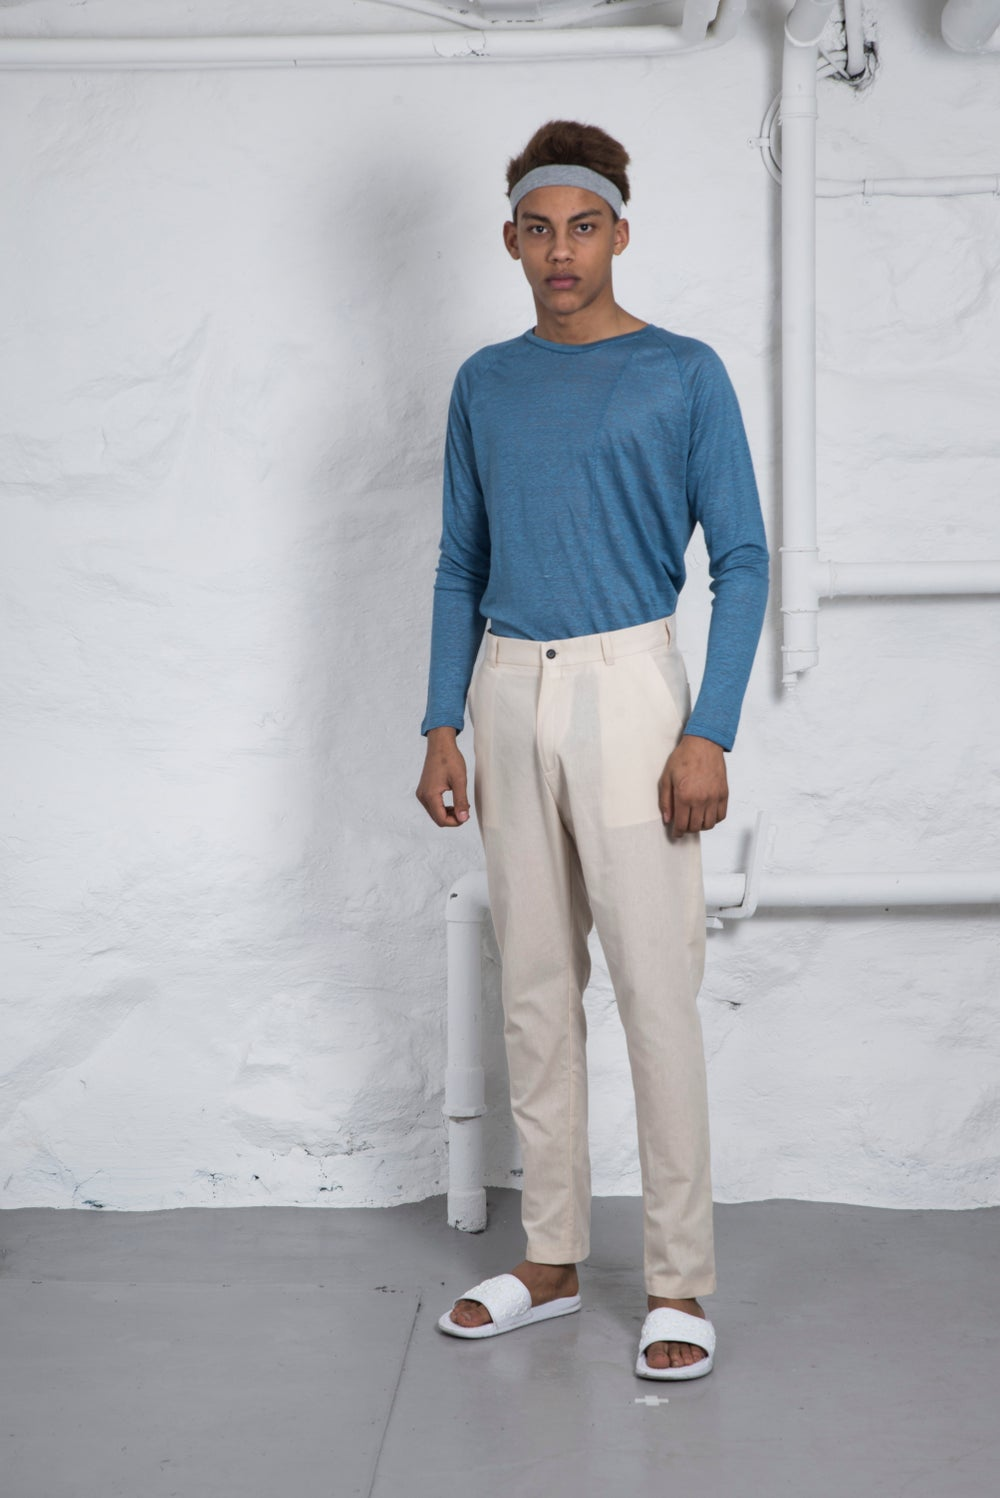 Image of Nico low crotch trousers beige